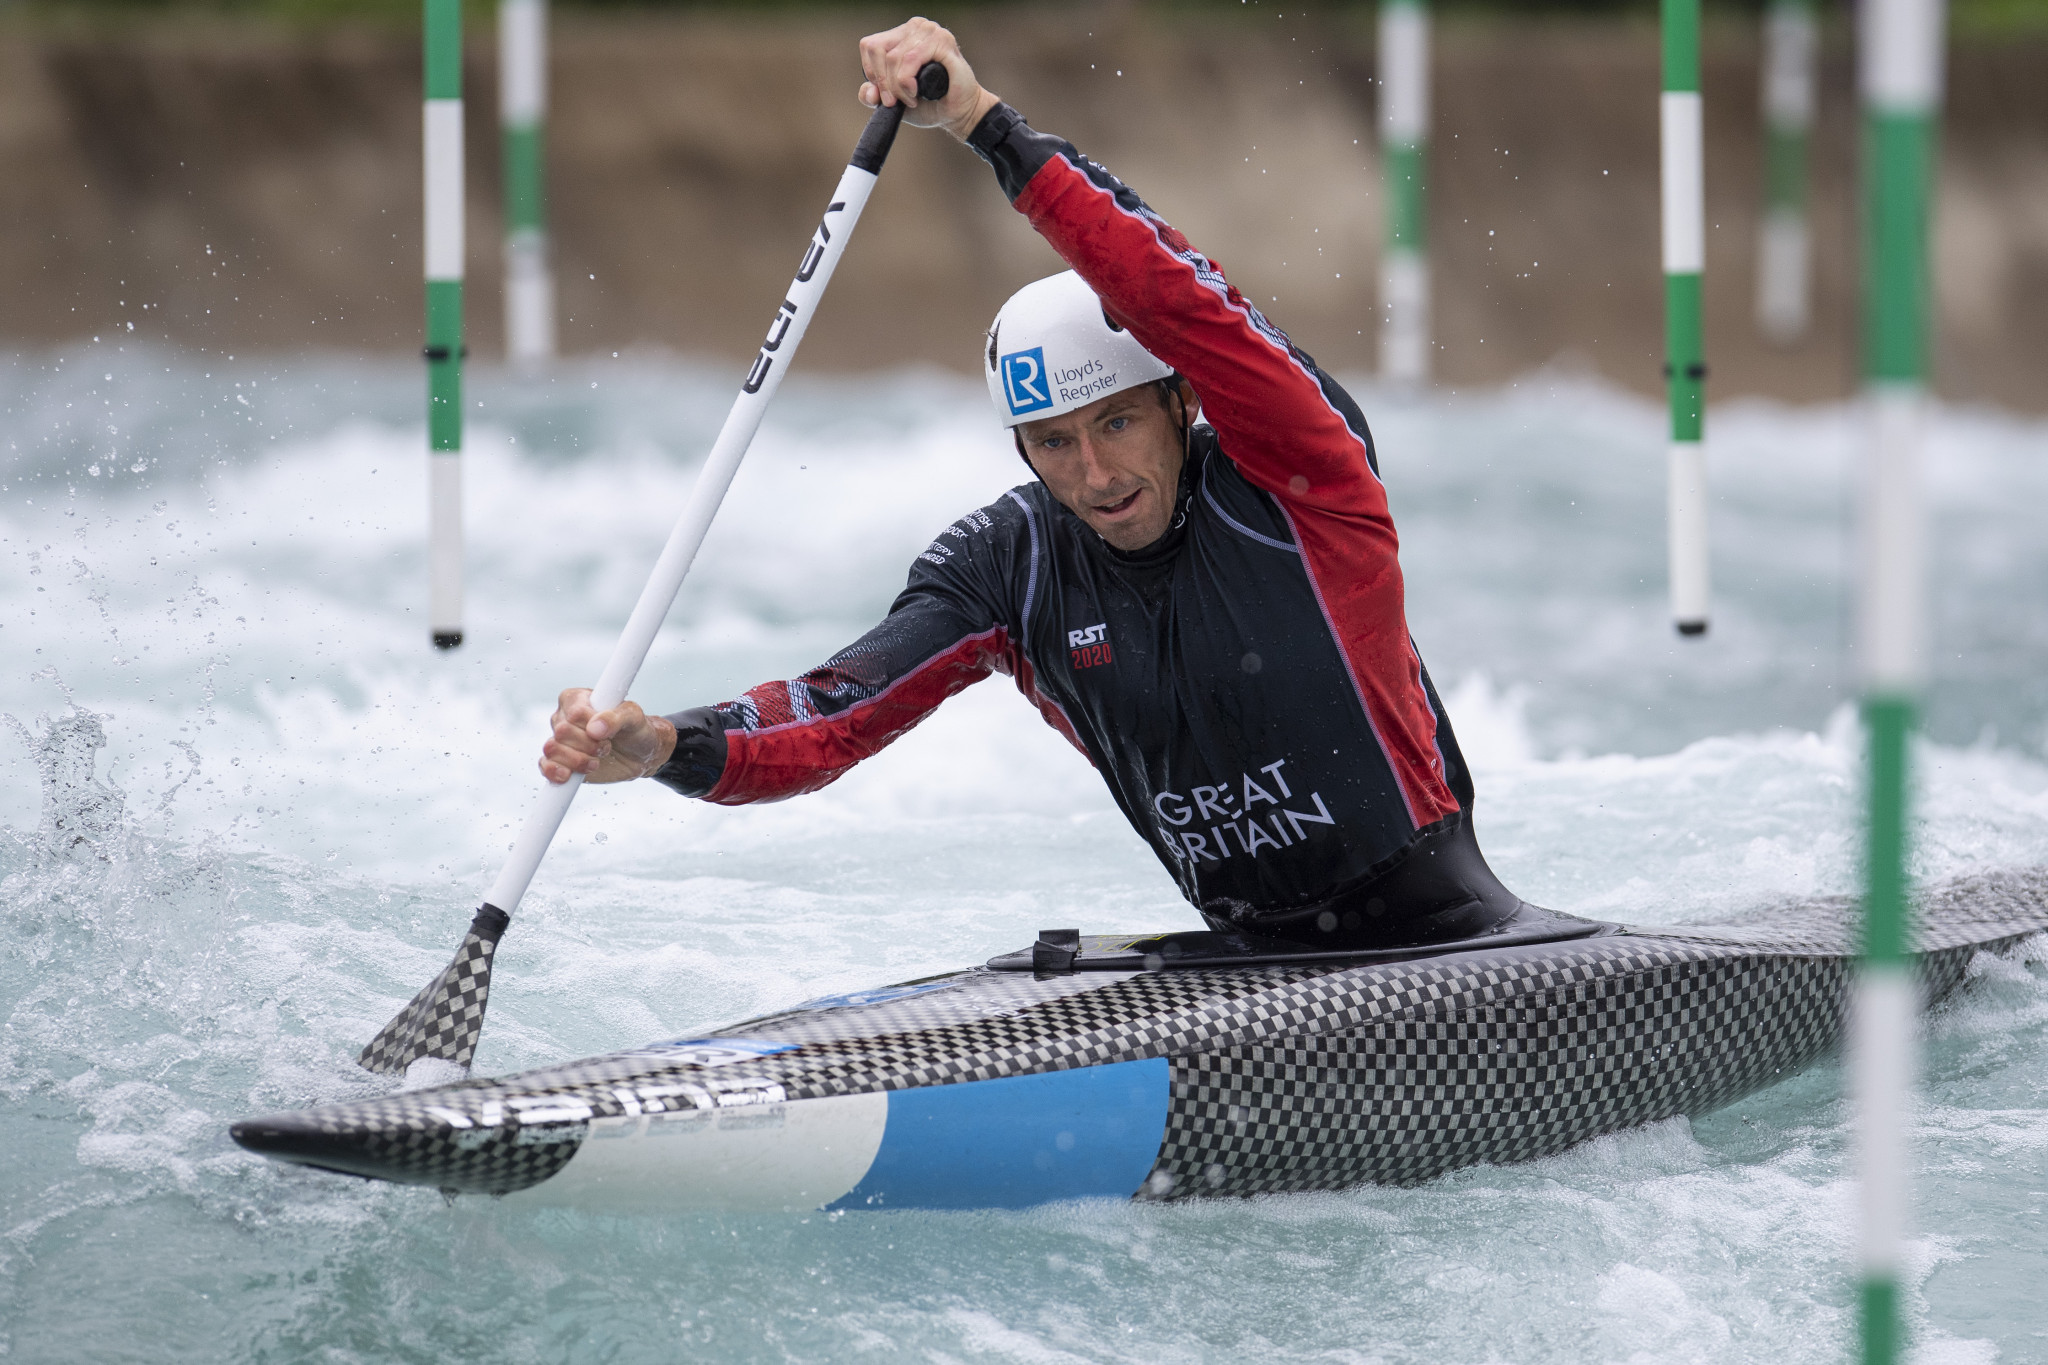 Nottingham in England is set to stage next year's ICF Canoe Freestyle World Championships ©Getty Images